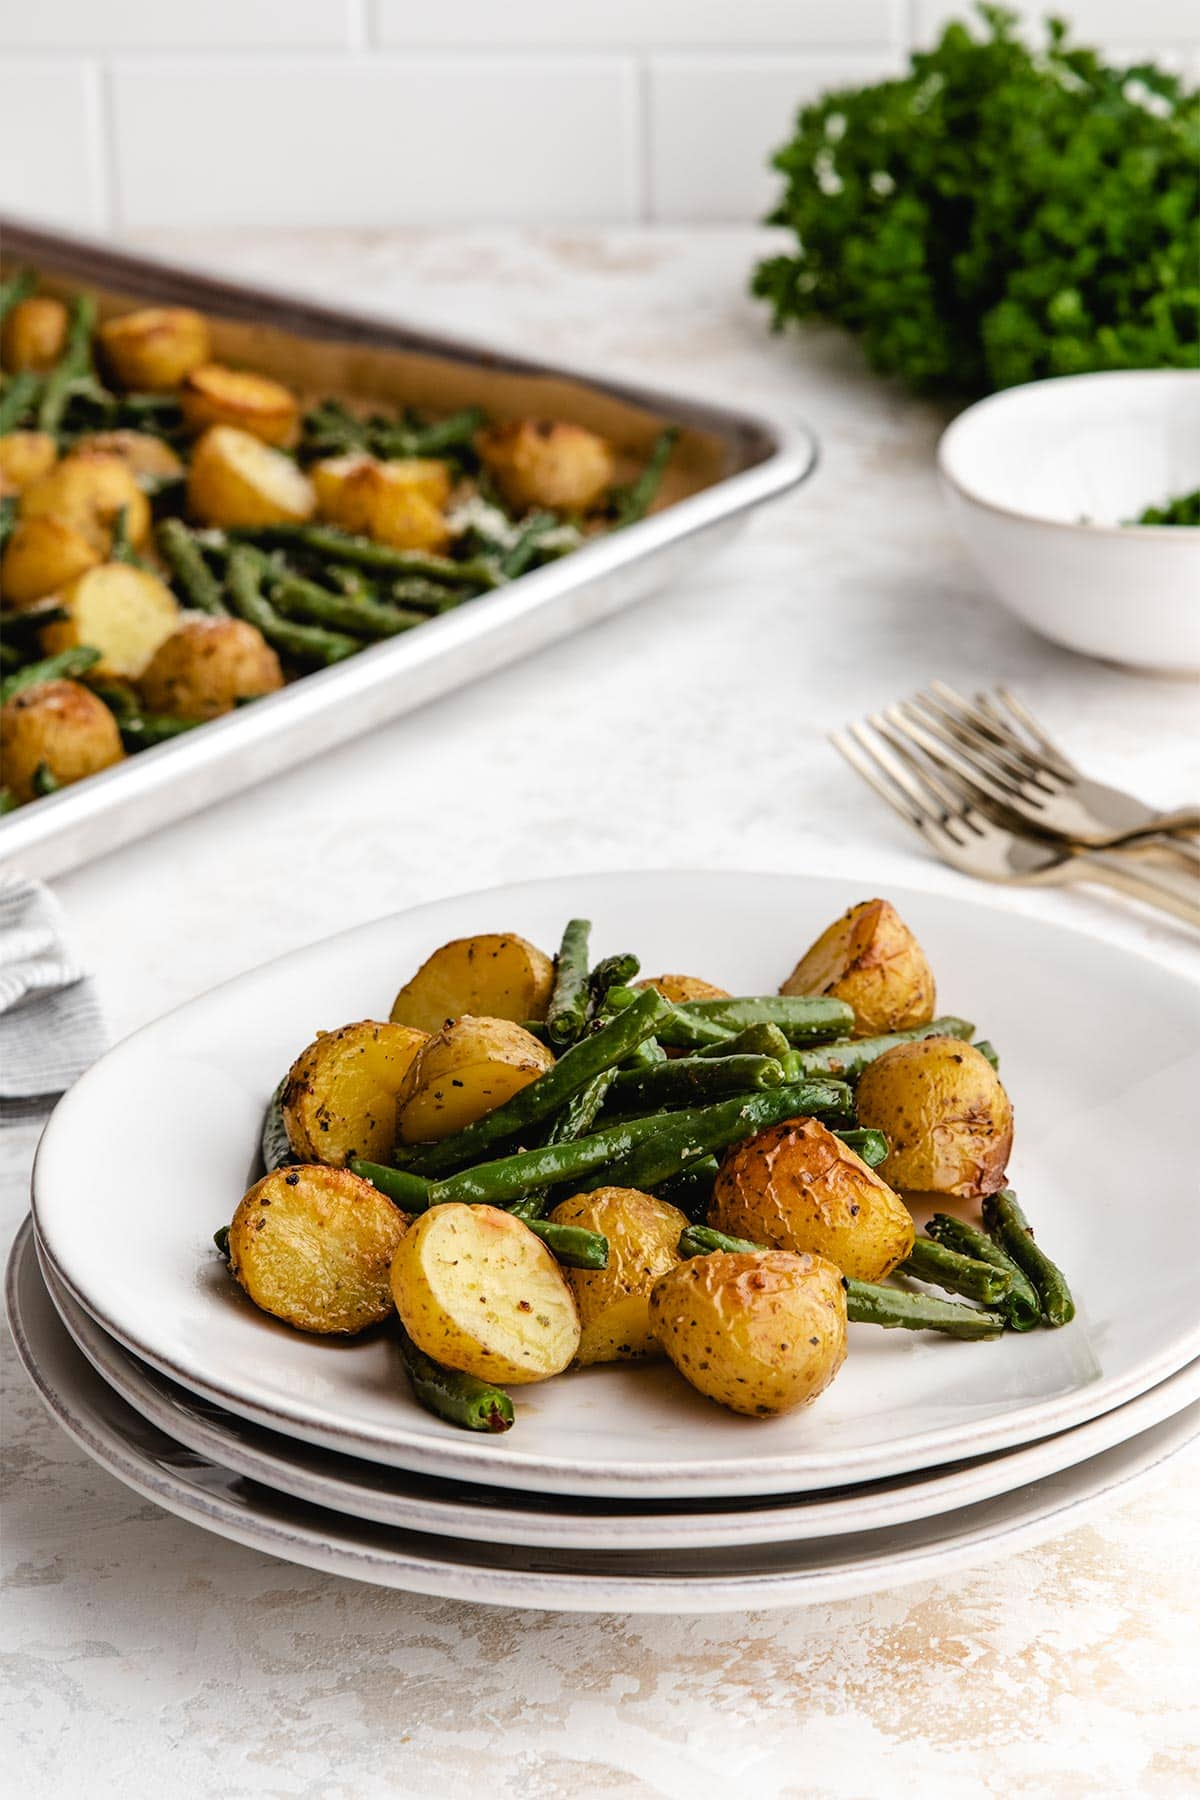 A serving of roasted potatoes and green beans on a stack of three white plates.